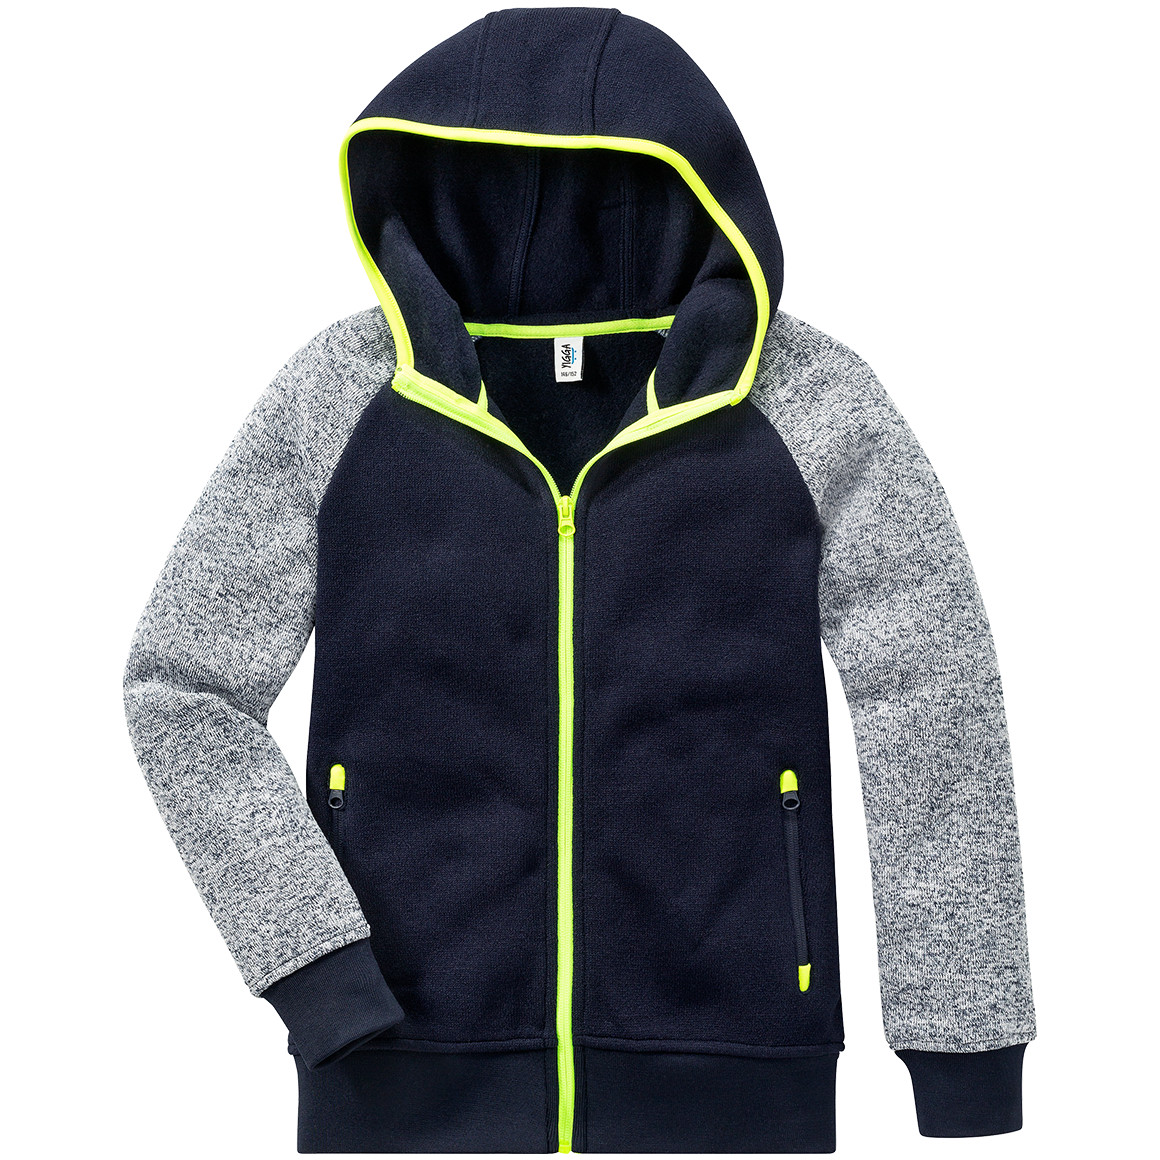 Boysjacken - Jungen Sweatjacke mit Kapuze - Onlineshop Ernstings family